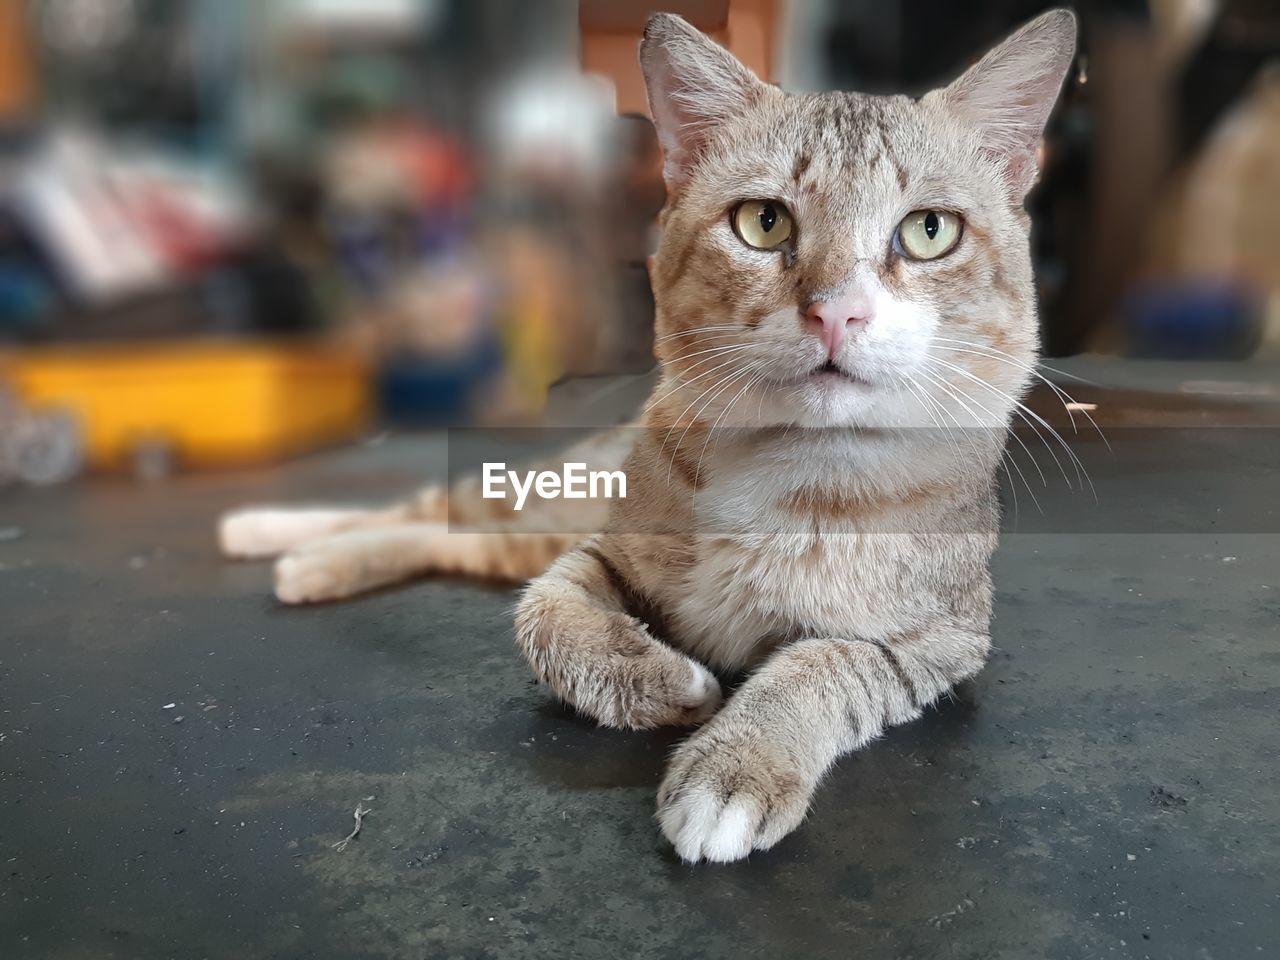 domestic, pets, domestic animals, cat, domestic cat, feline, mammal, one animal, vertebrate, looking at camera, portrait, focus on foreground, whisker, relaxation, no people, close-up, indoors, animal eye, tabby